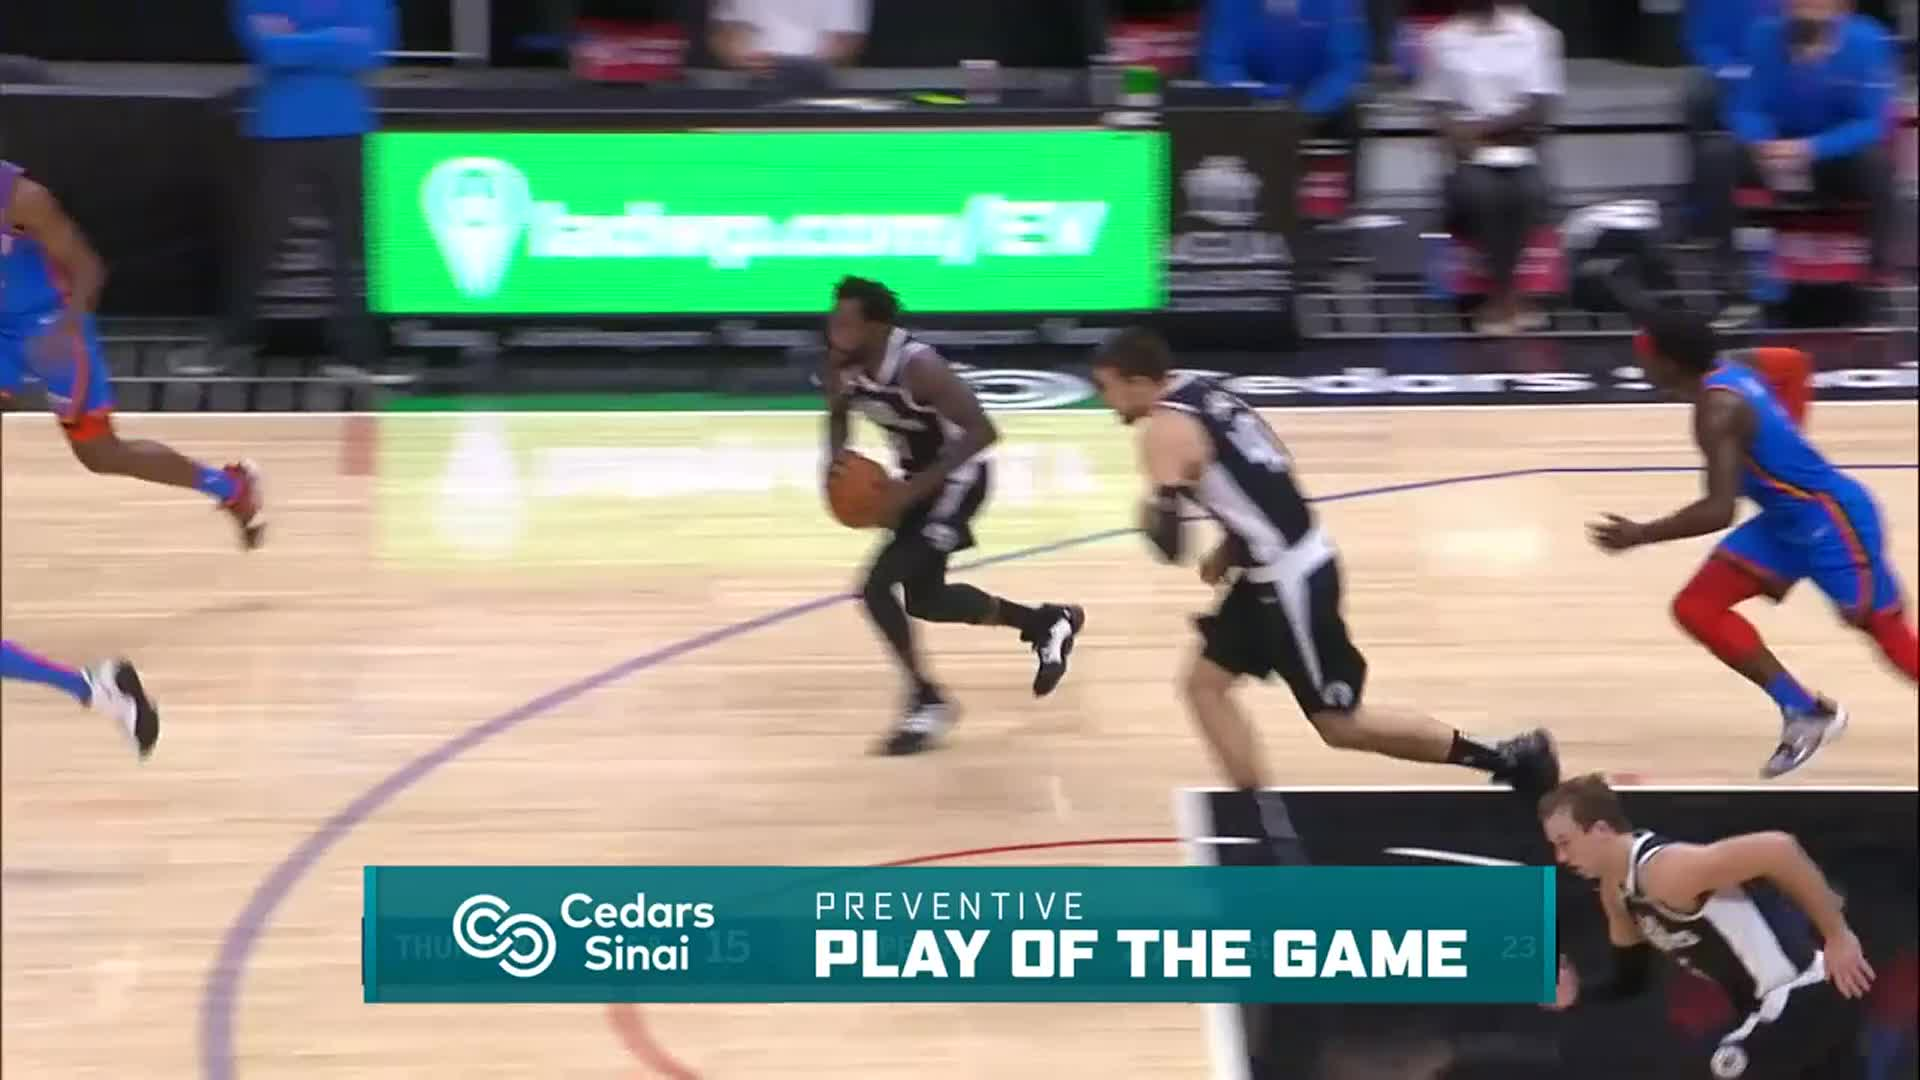 Cedars-Sinai Preventive Play of the Game | Clippers vs Thunder (1.24.21)